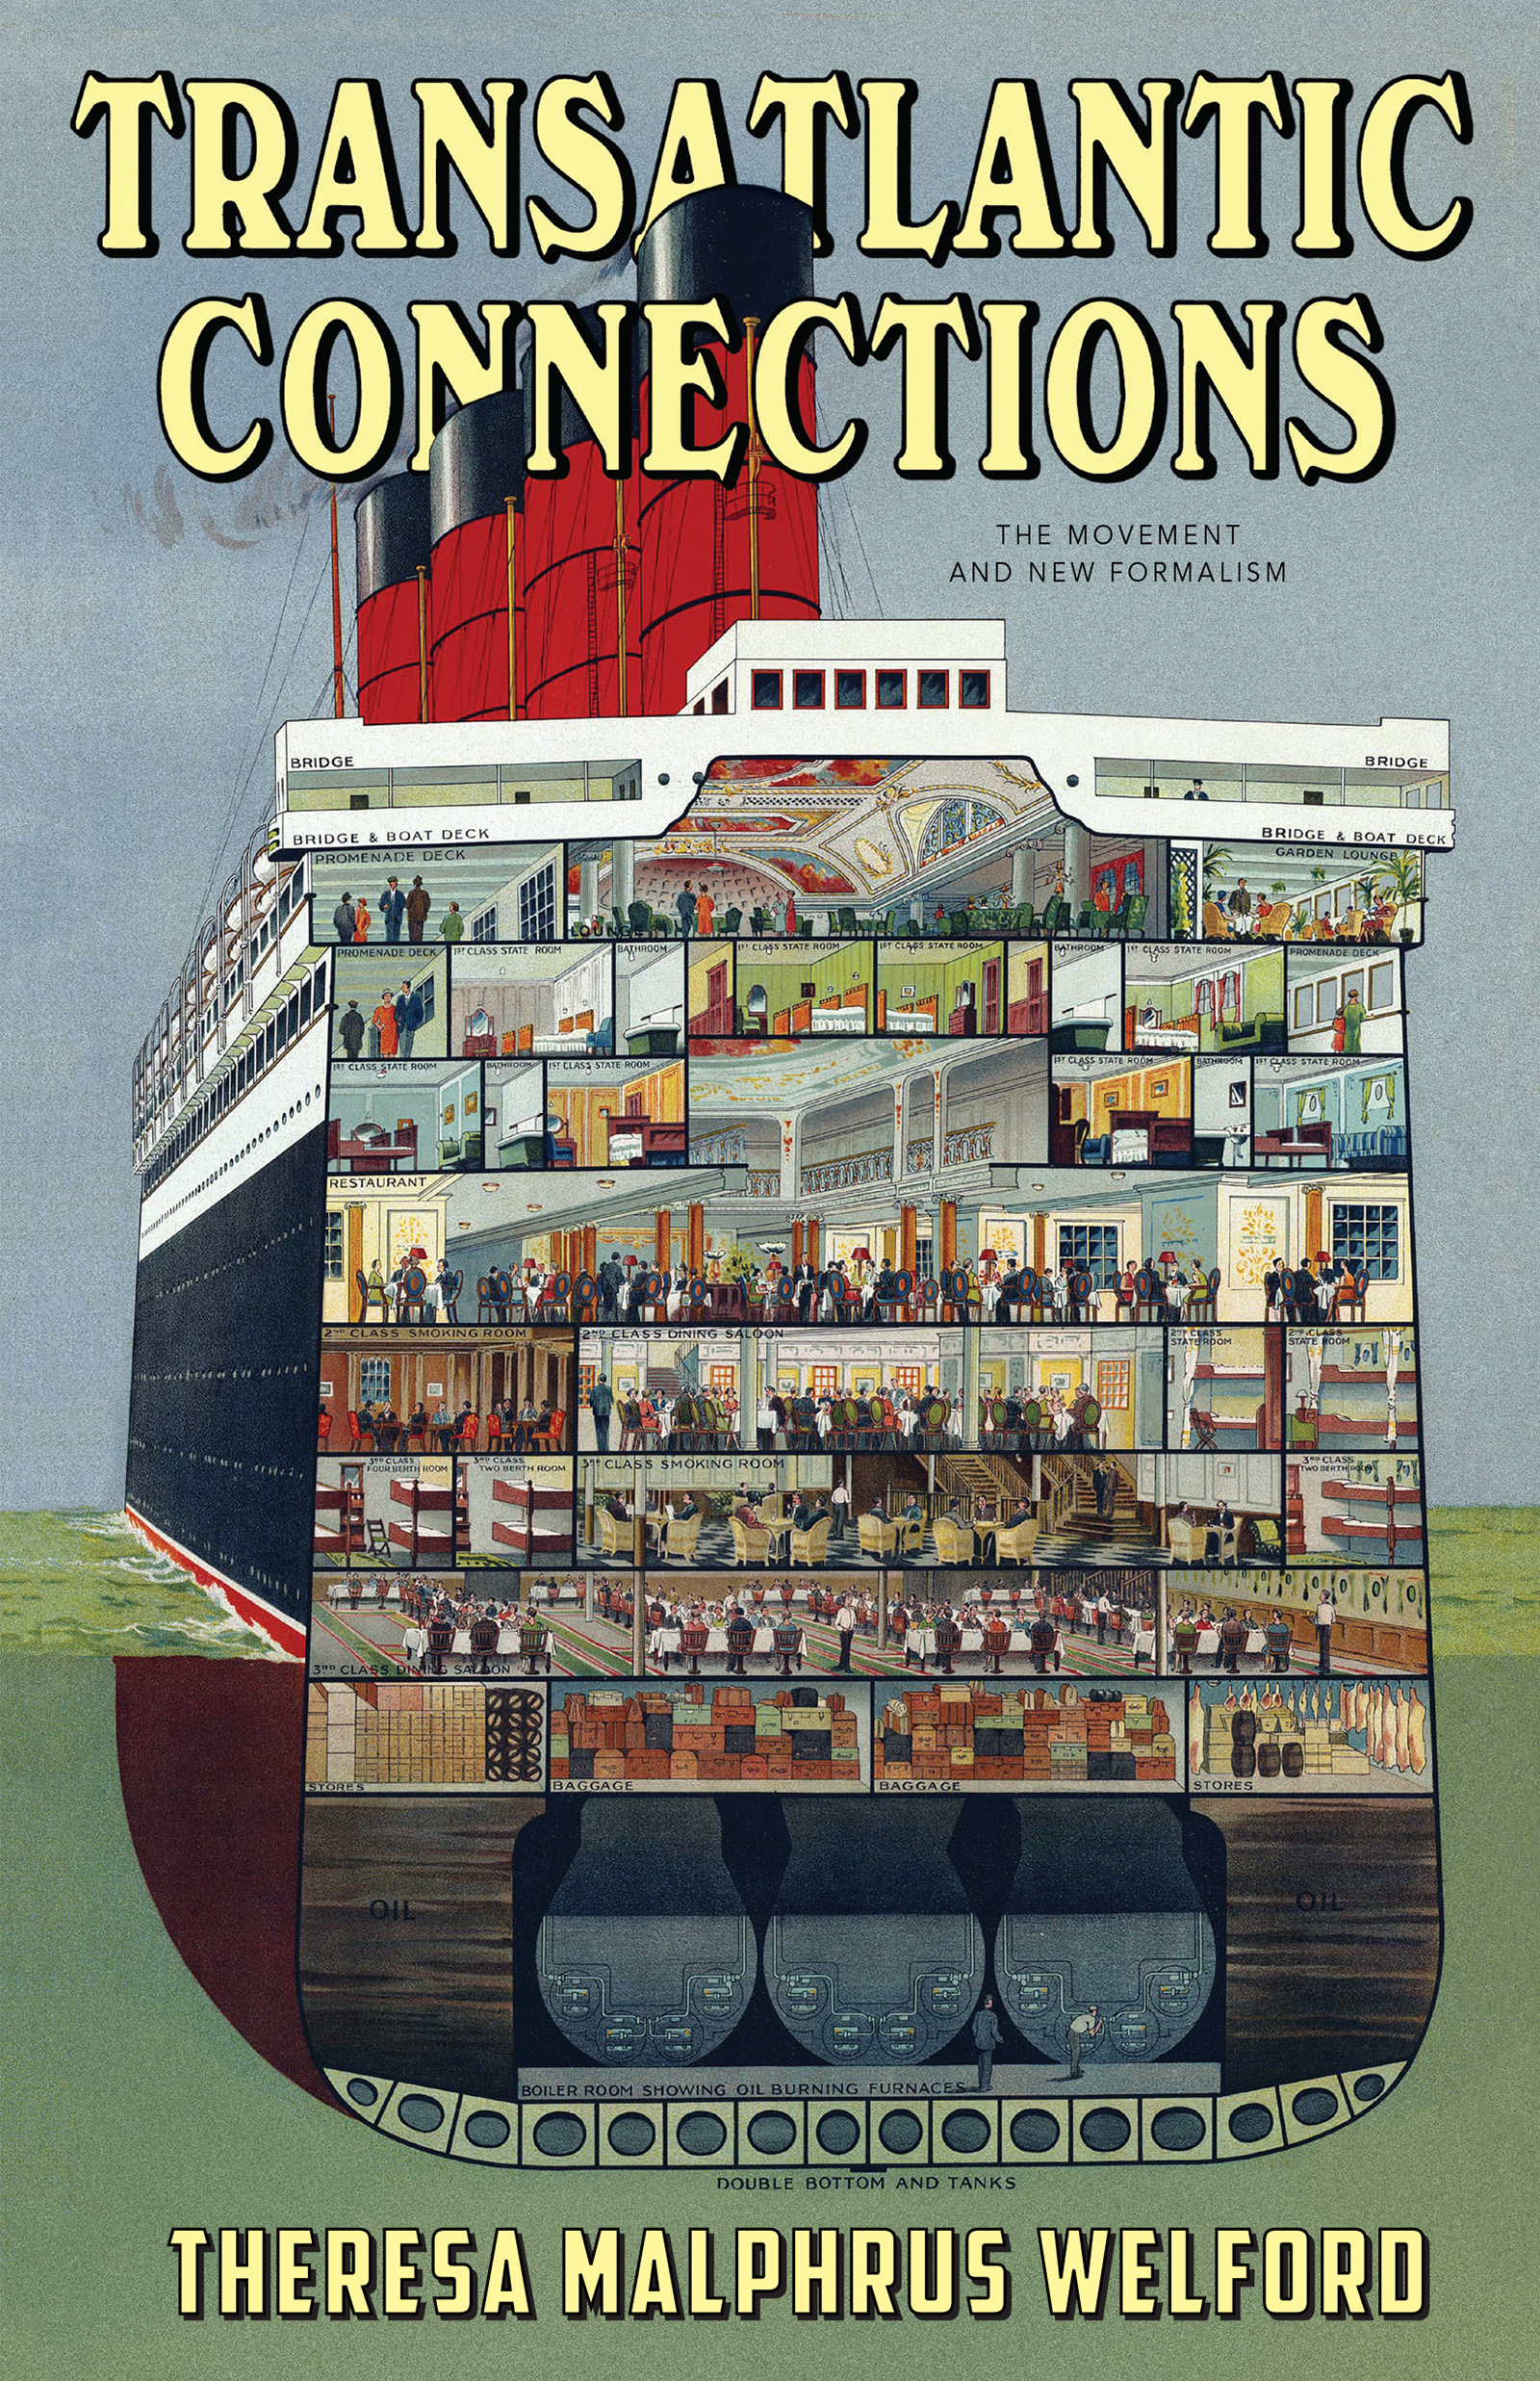 A graphic design of a large boat carrying passengers with yellow script that reads Transatlantic Connections by Theresa Malphrus Welford.